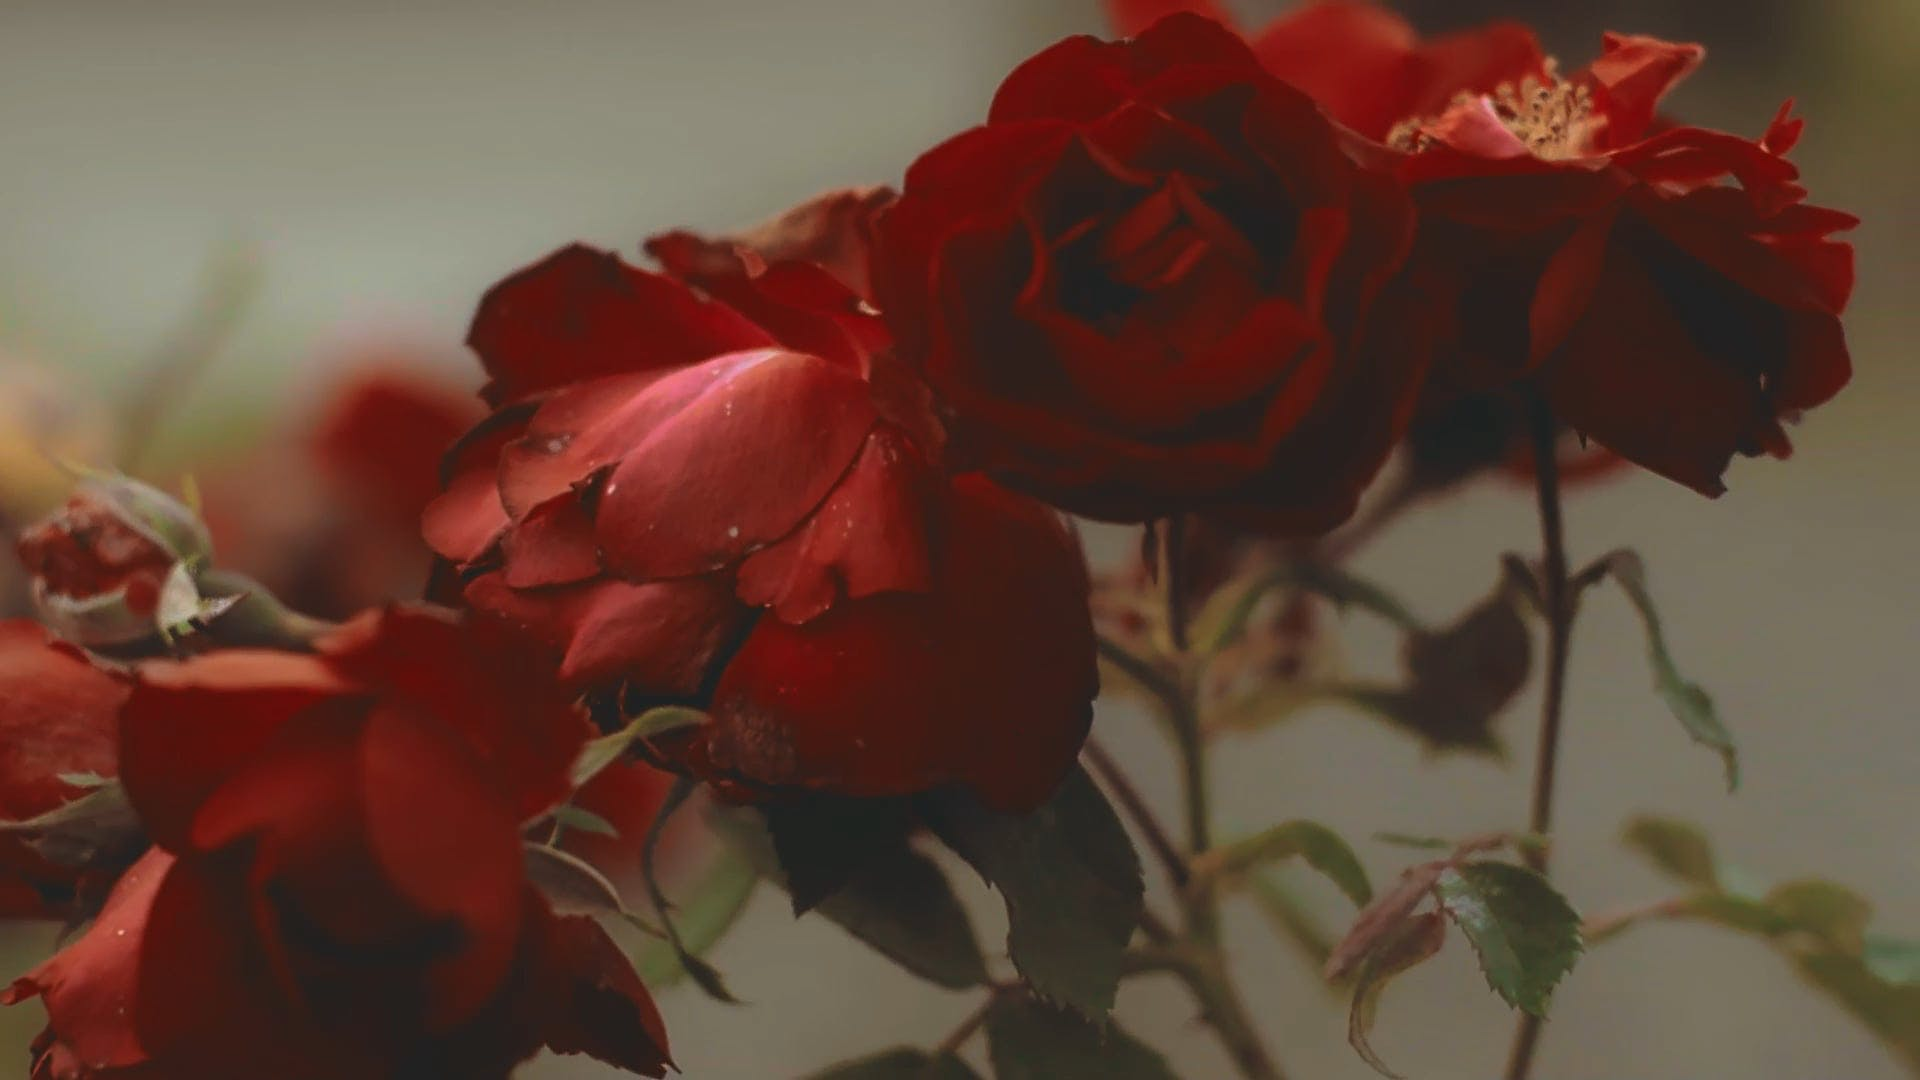 Red Roses In Close-Up View